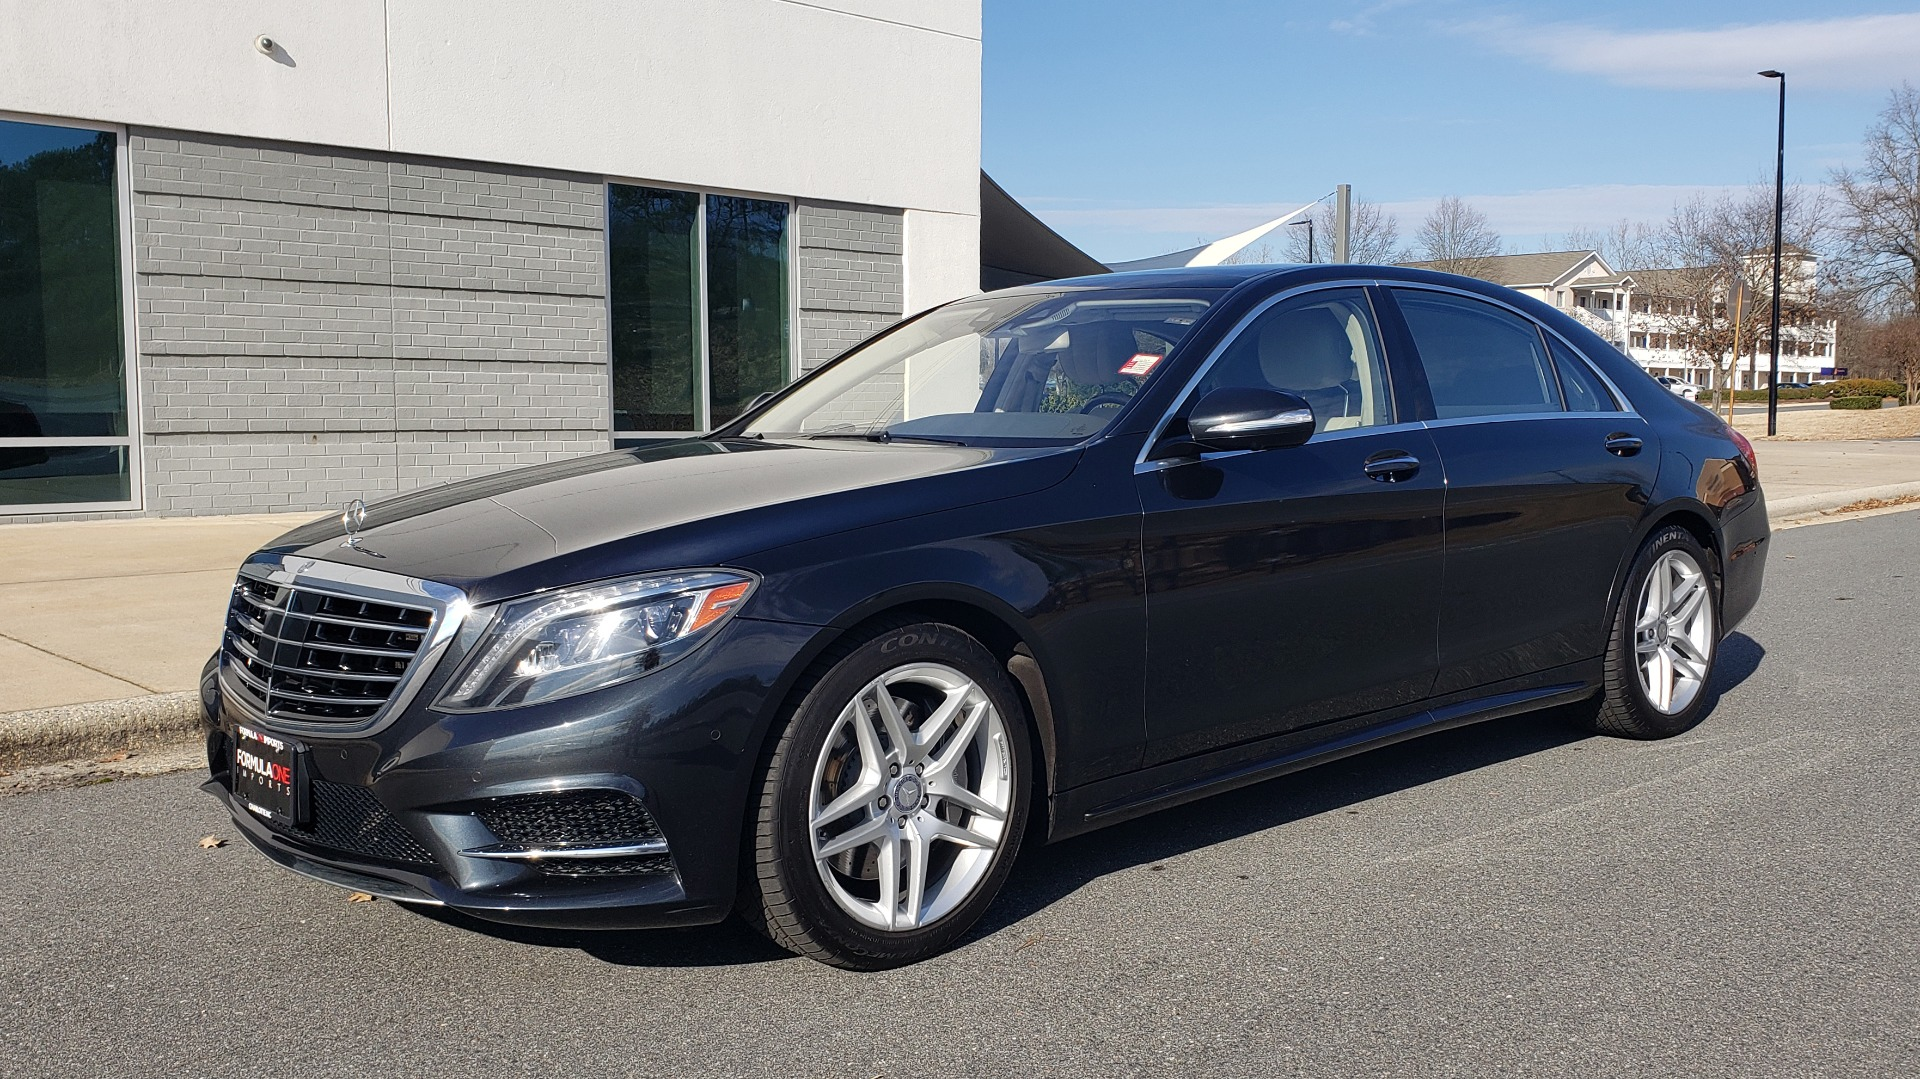 Used 2015 Mercedes-Benz S-CLASS S 550 PREMIUM / SPORT / WARMTH&COMFORT / DRVR ASST / SRND VIEW for sale Sold at Formula Imports in Charlotte NC 28227 1